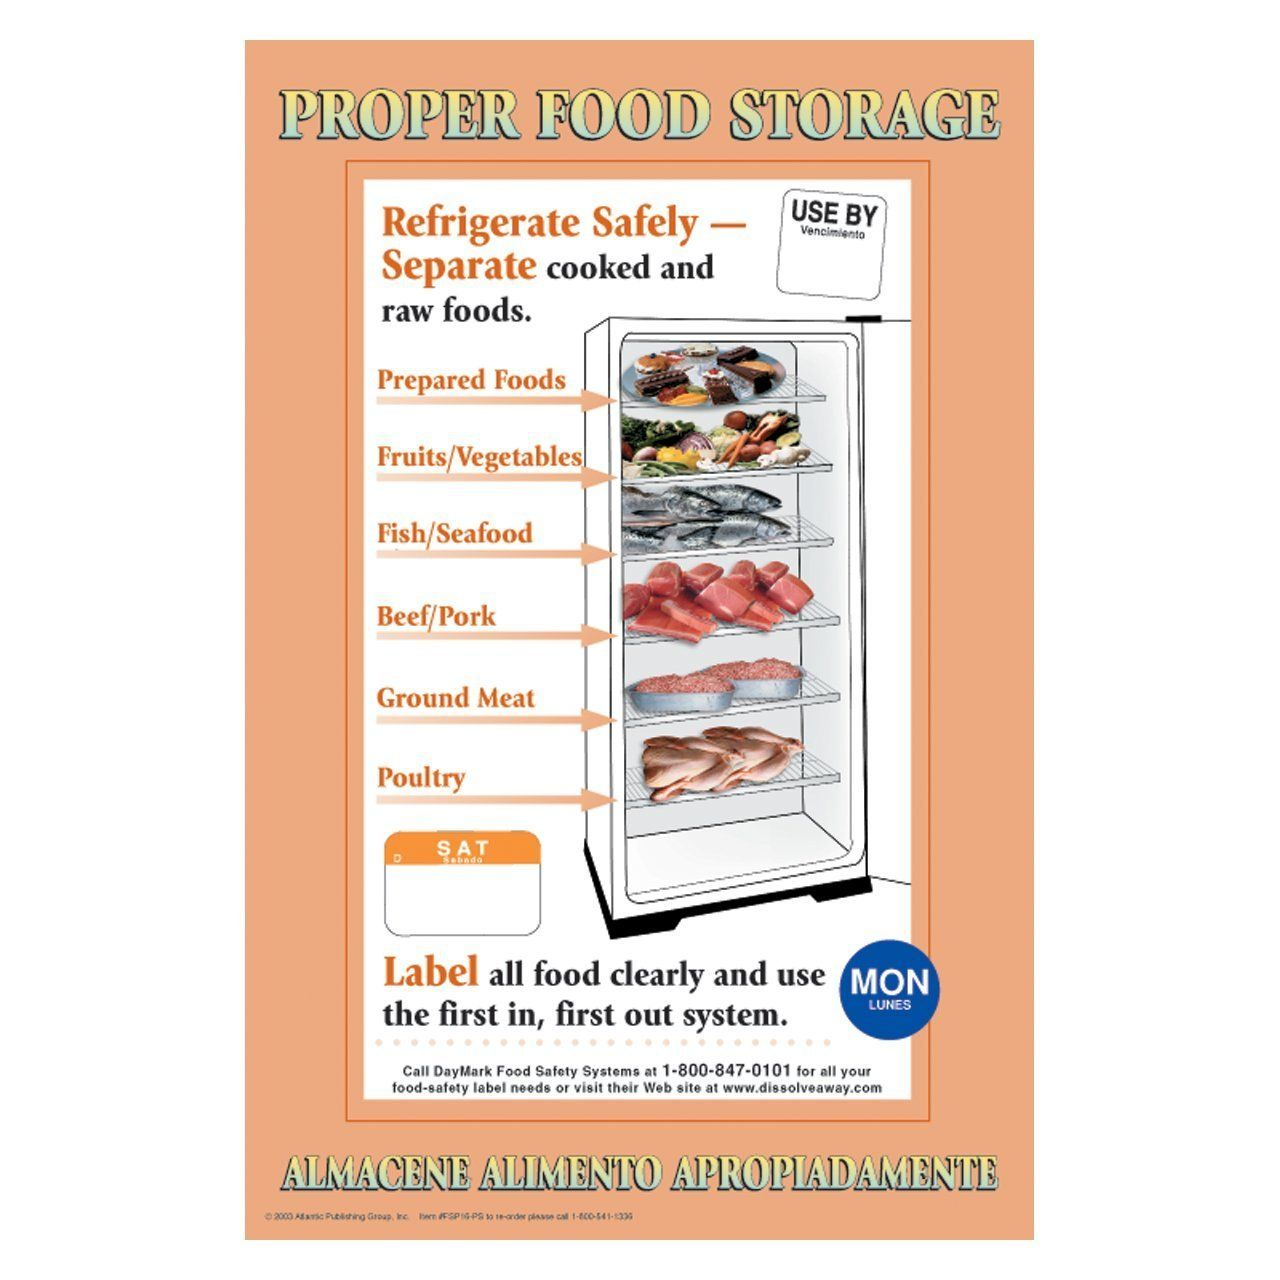 Proper Food Storage Requires Magnificent Proper Food Storage Poster Interesting About Remodel Home Design Decorating Design